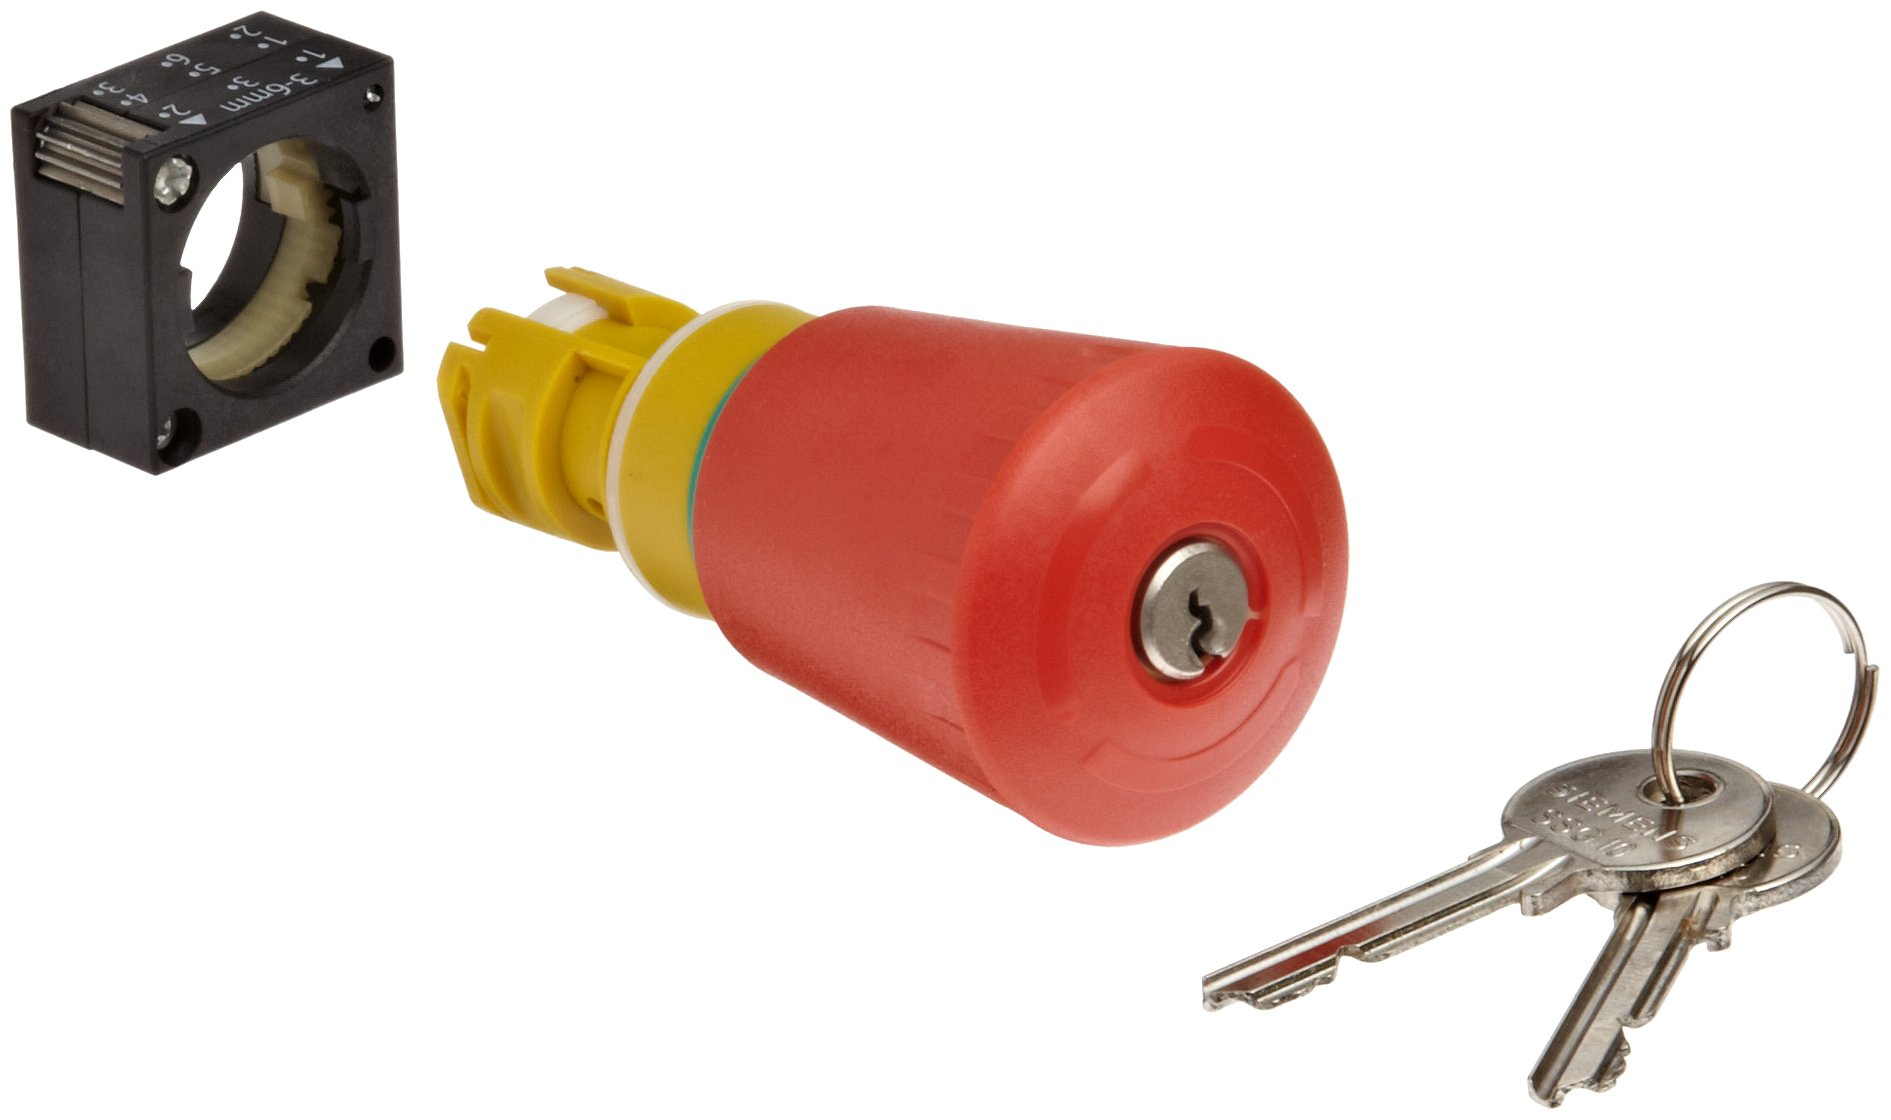 Siemens 3SB30 00-1KA20 Key Operated Emergency Stop Mushroom Pushbutton, 40mm Head, CES Key Operated, SSG 10 Lock, Positive Latching, Unlock By Key Only, On/Off Key Removal Position, Red